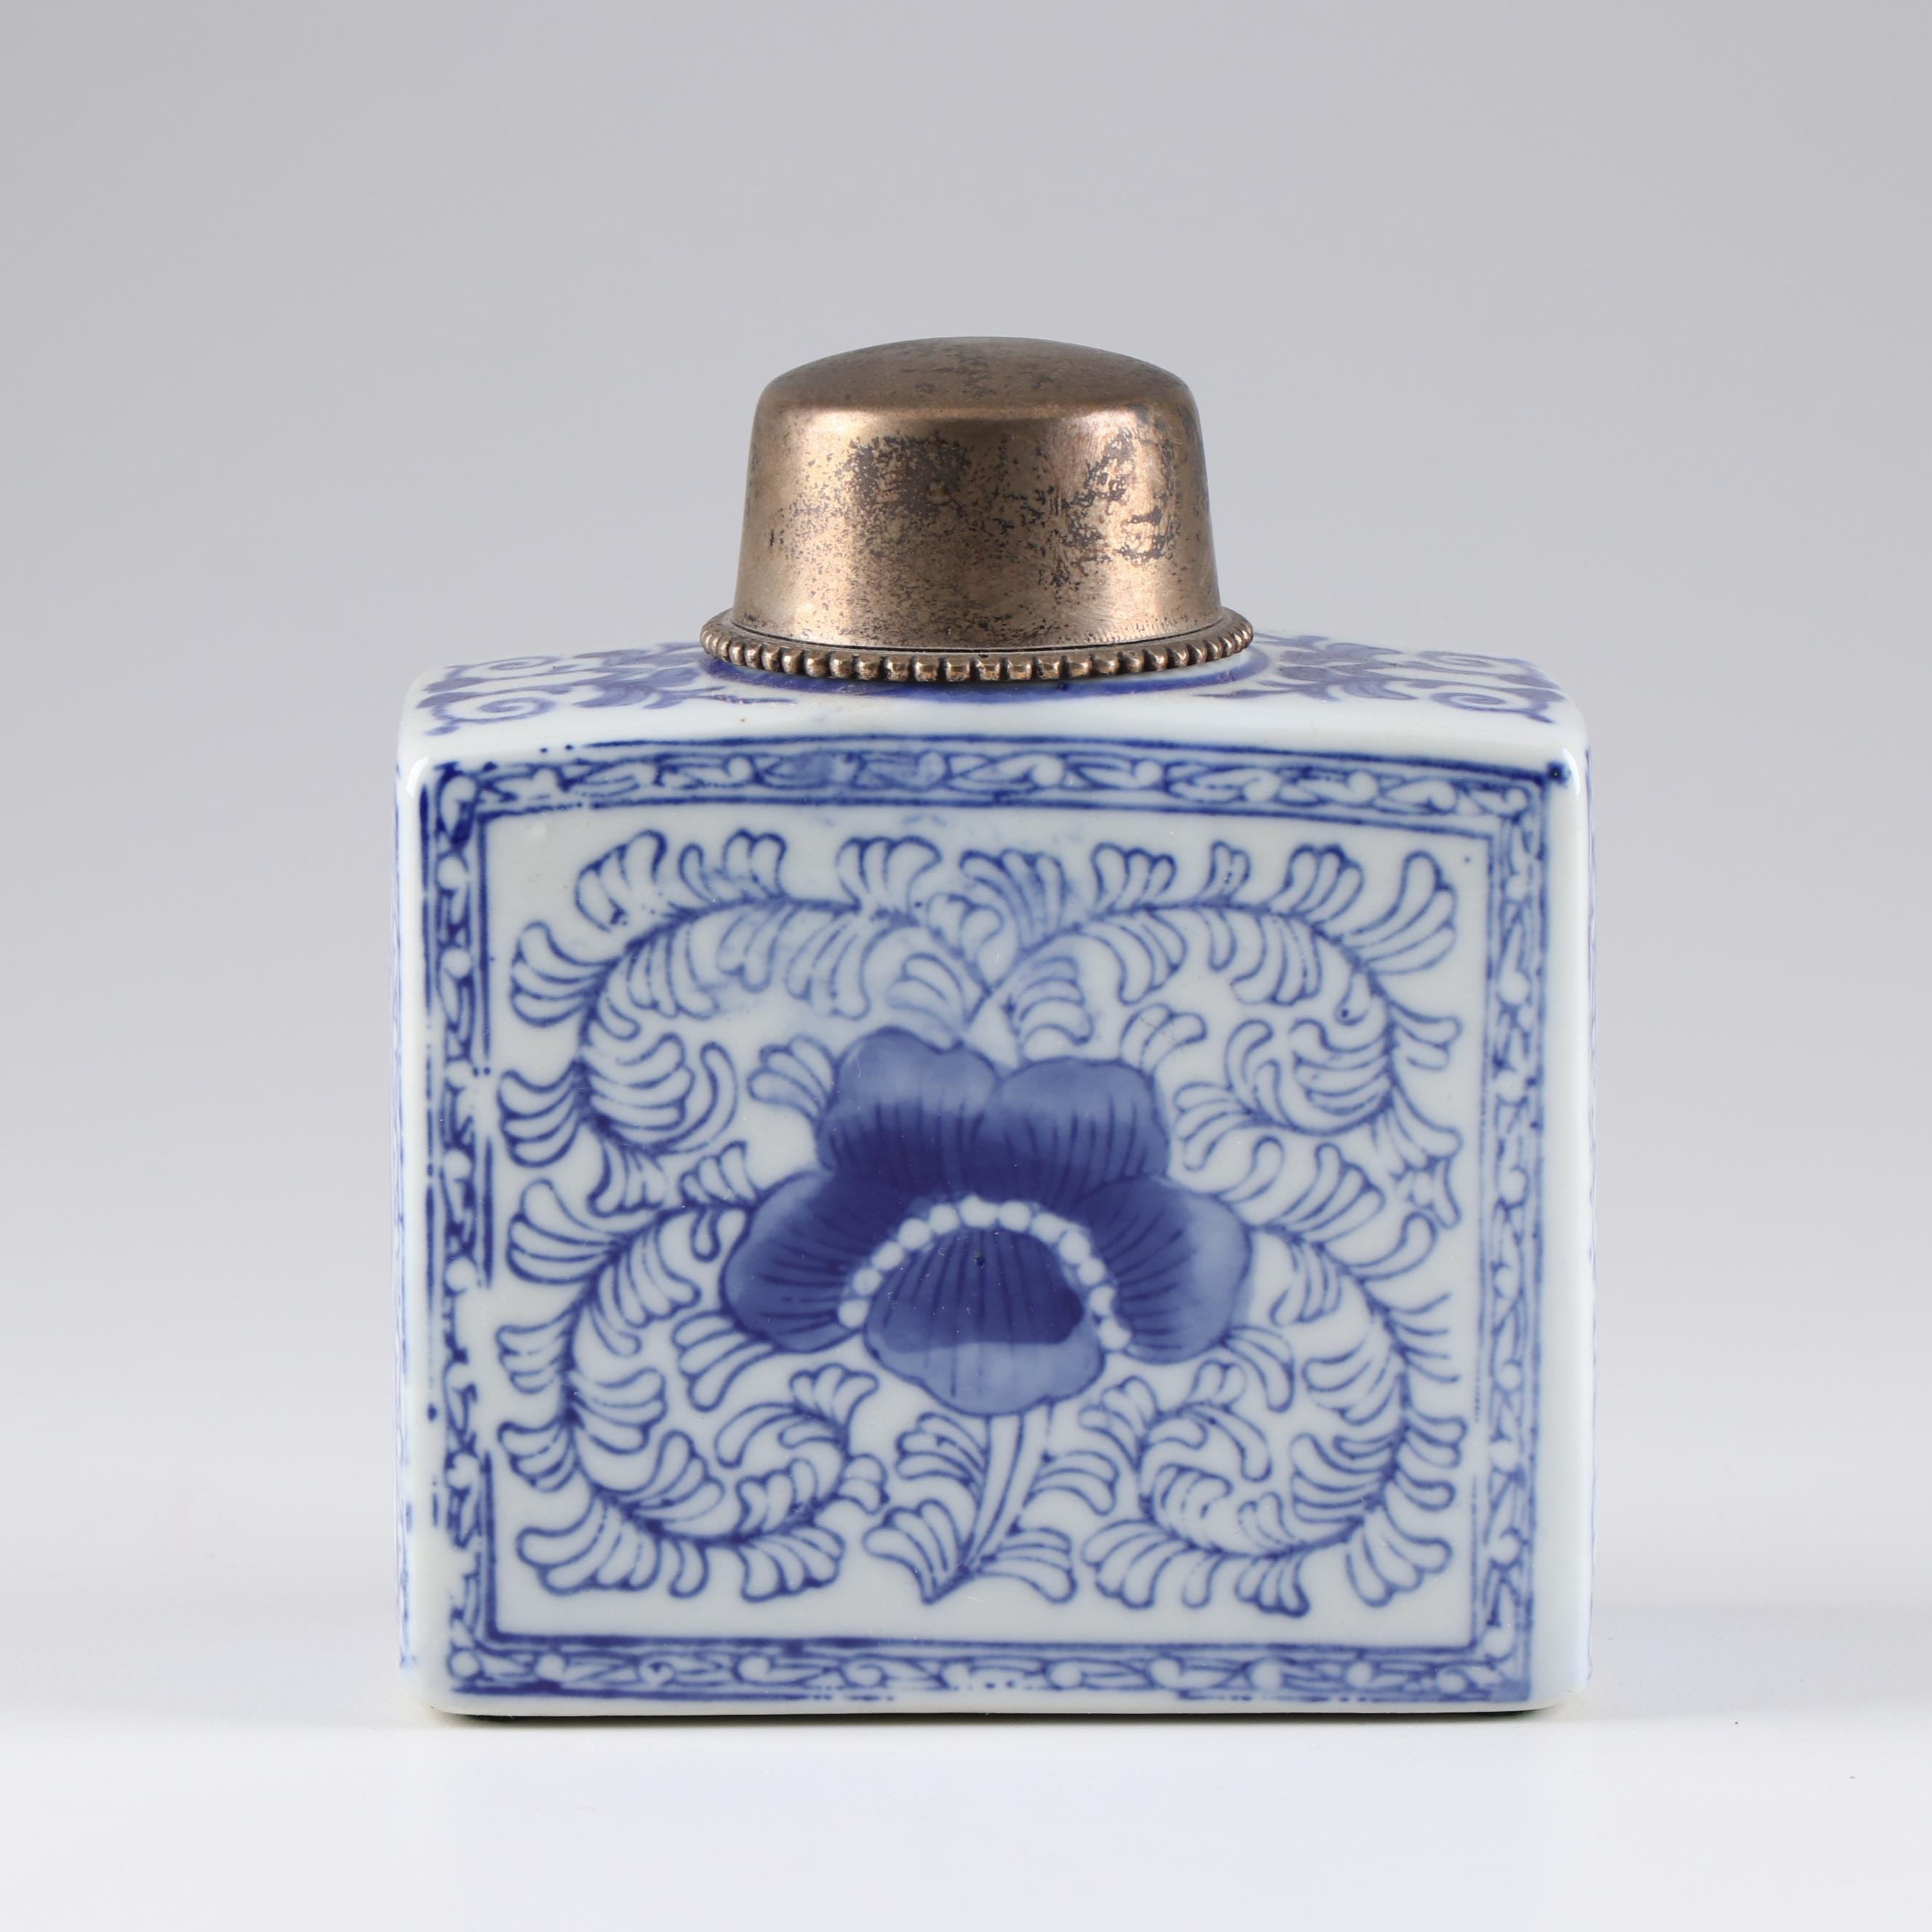 Chinese Blue and White Ceramic Bottle